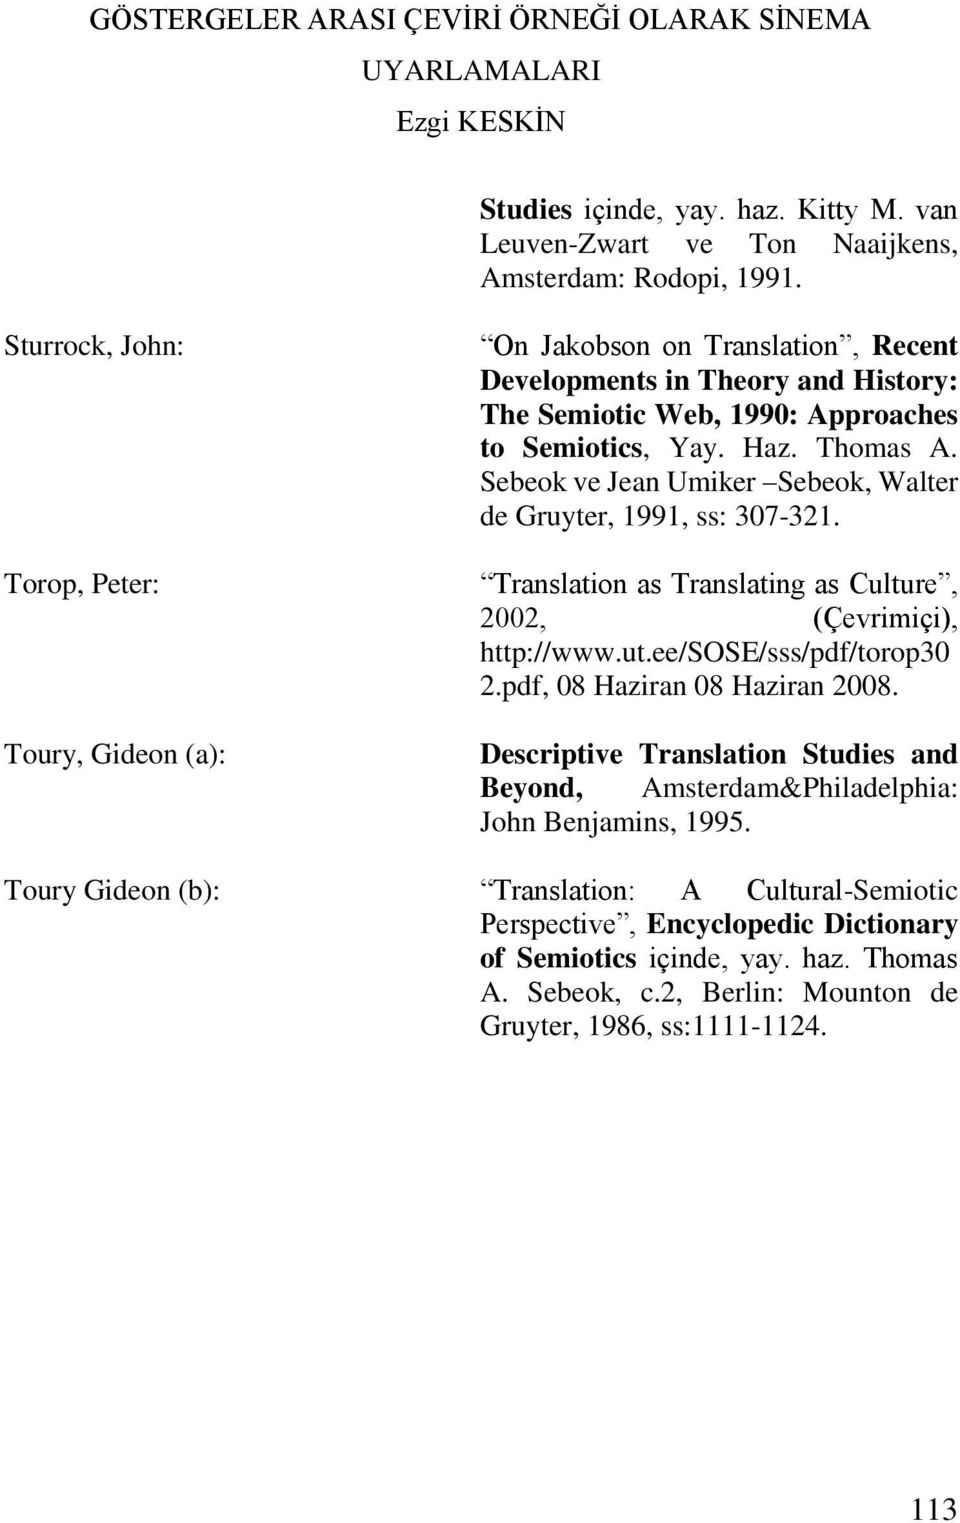 Sebeok ve Jean Umiker Sebeok, Walter de Gruyter, 1991, ss: 307-321. Translation as Translating as Culture, 2002, (Çevrimiçi), http://www.ut.ee/sose/sss/pdf/torop30 2.